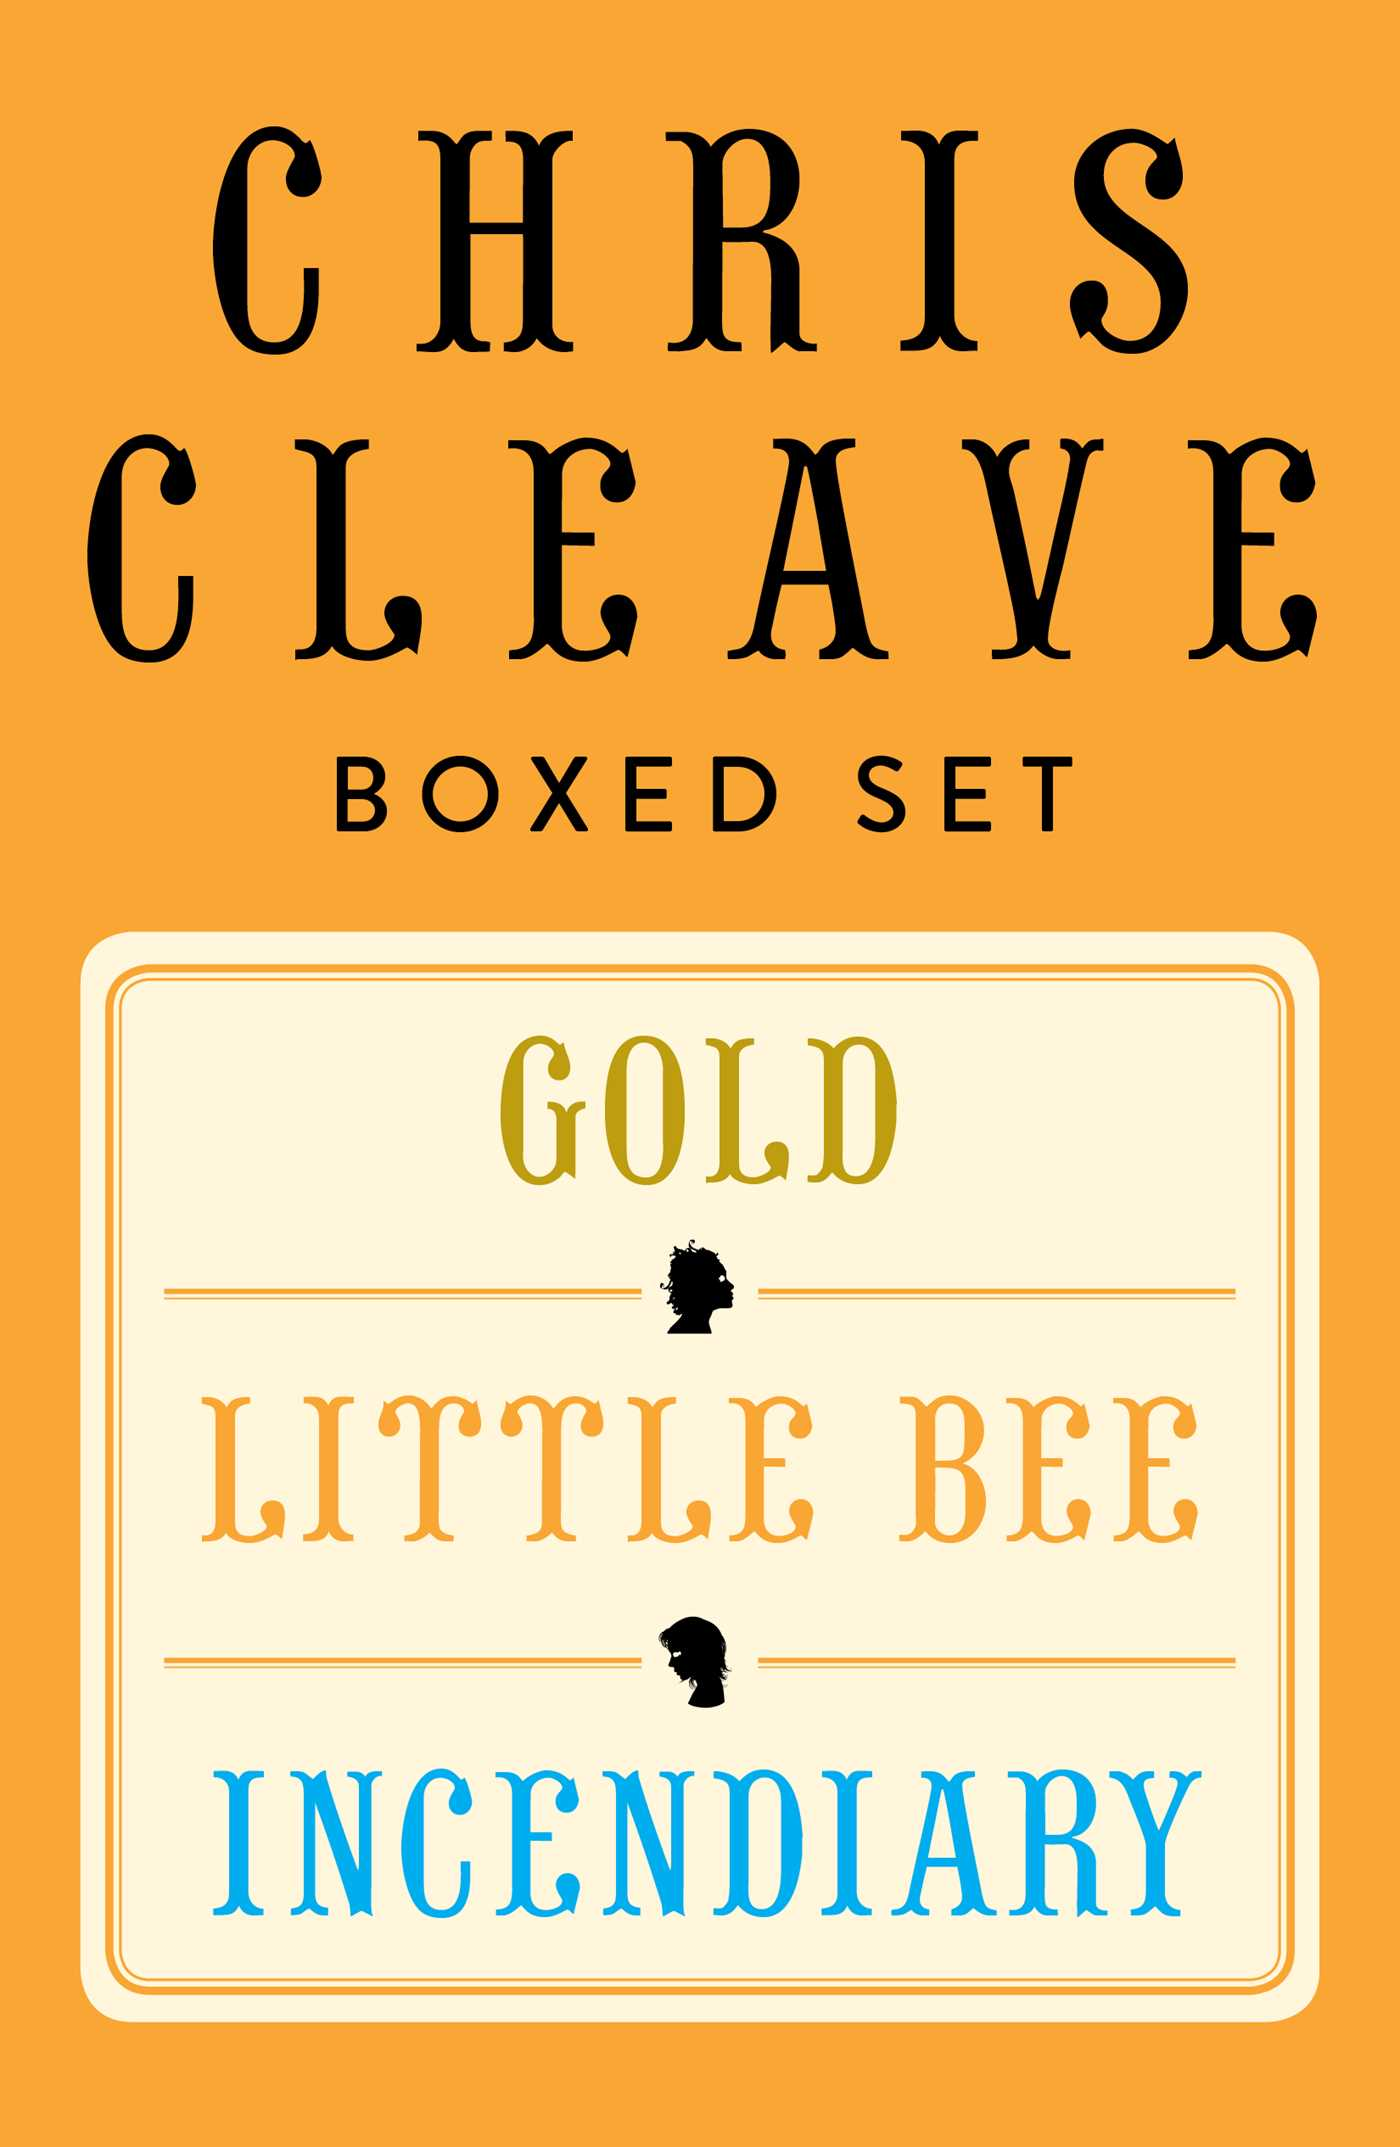 Chris cleave ebook boxed set 9781451676853 hr